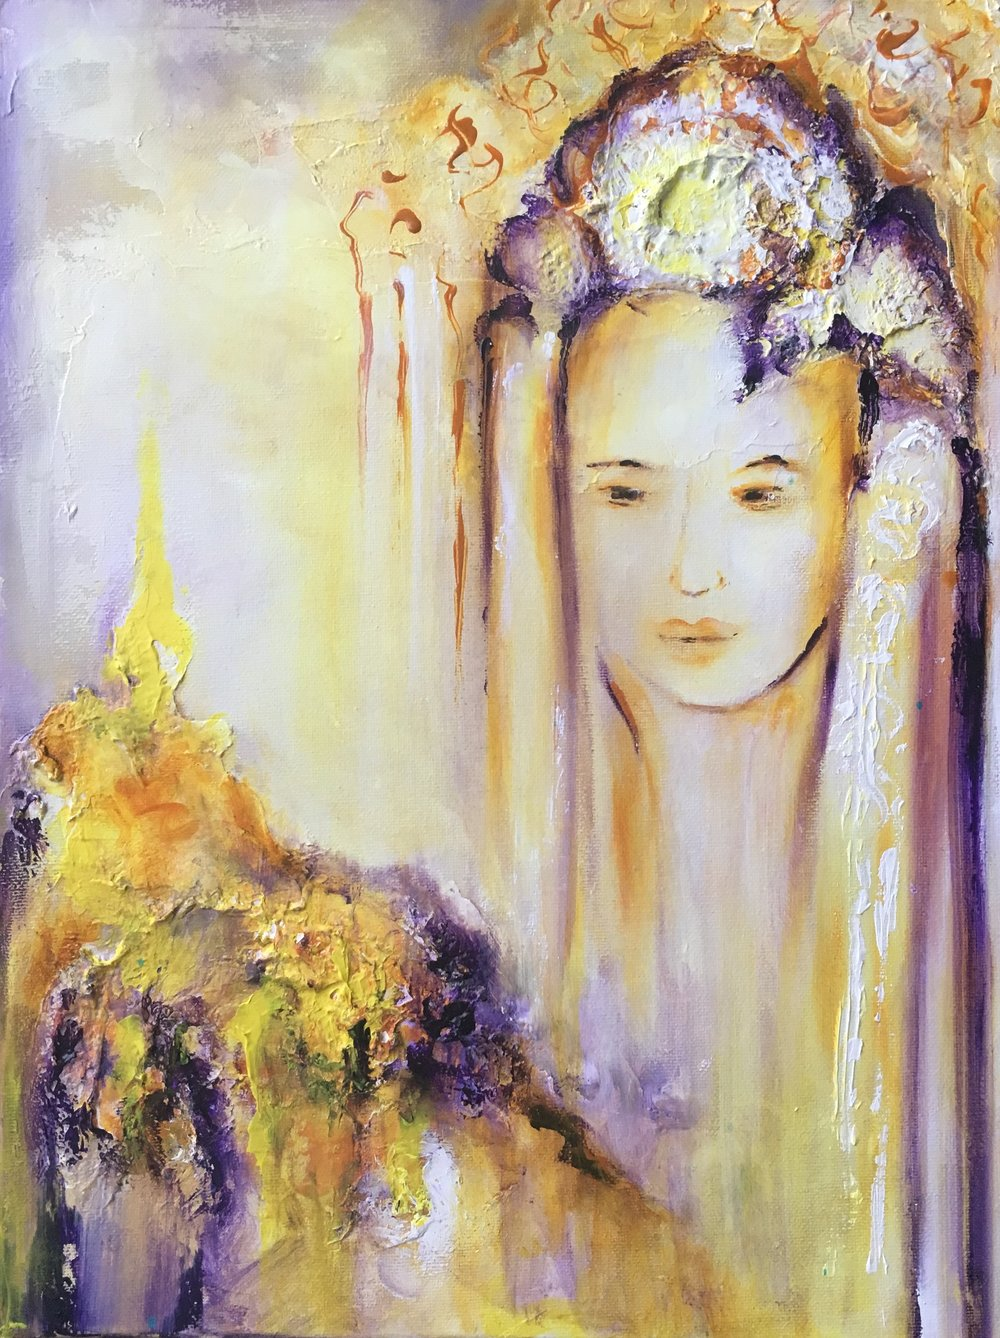 Sky Goddess - Sold, Private Collection